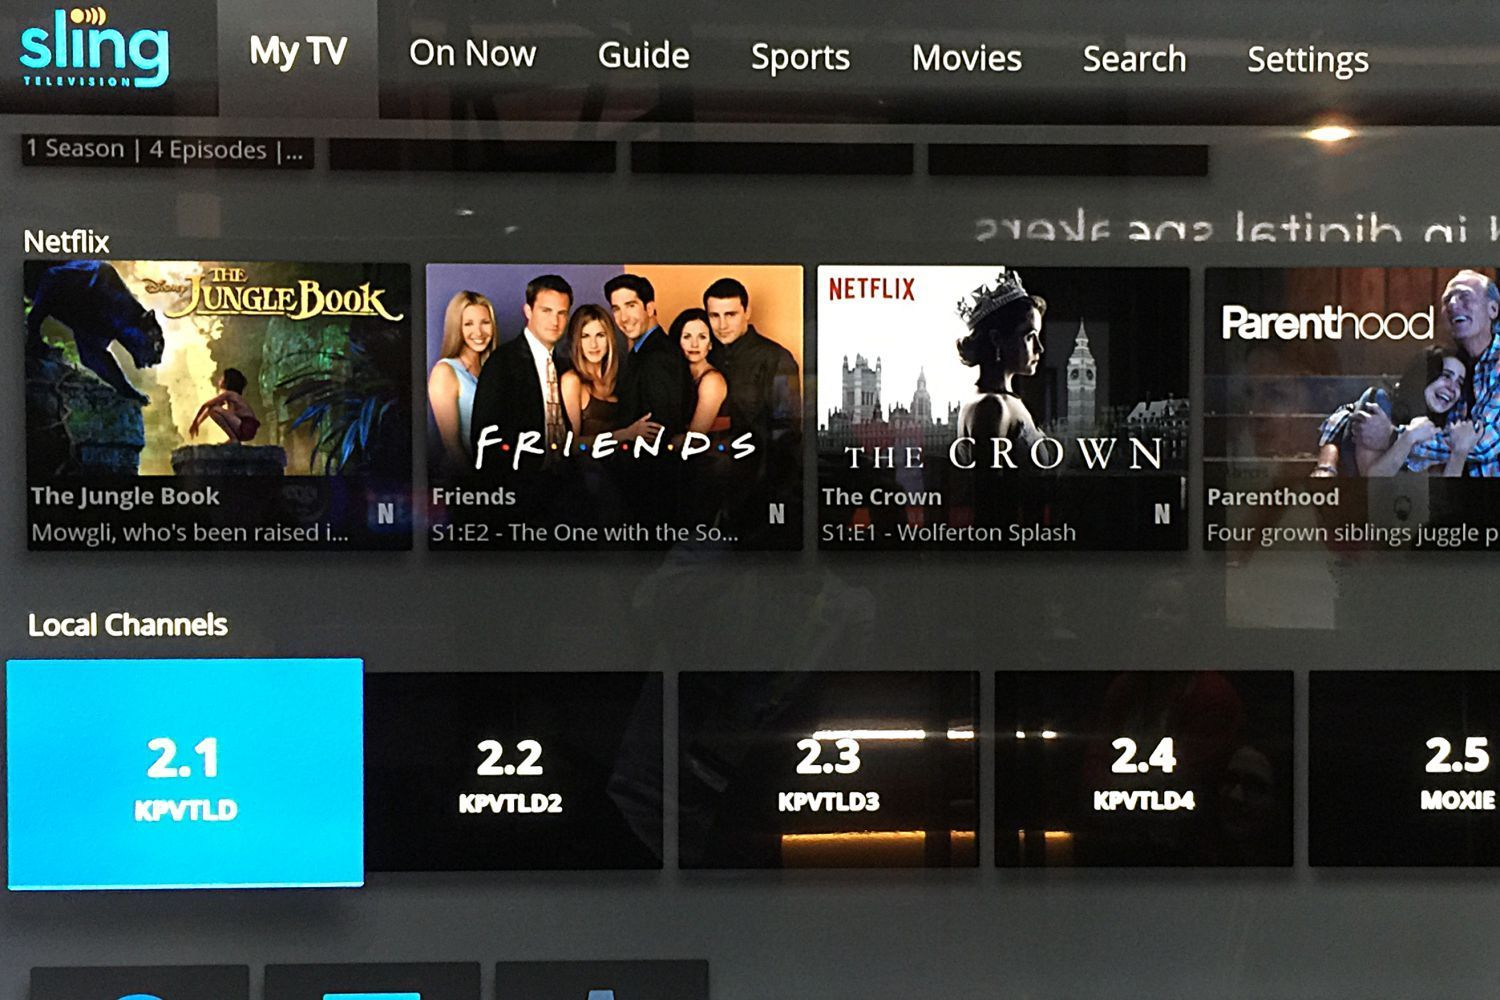 AirTV's slick marriage of Sling TV and OTA channels isn't in